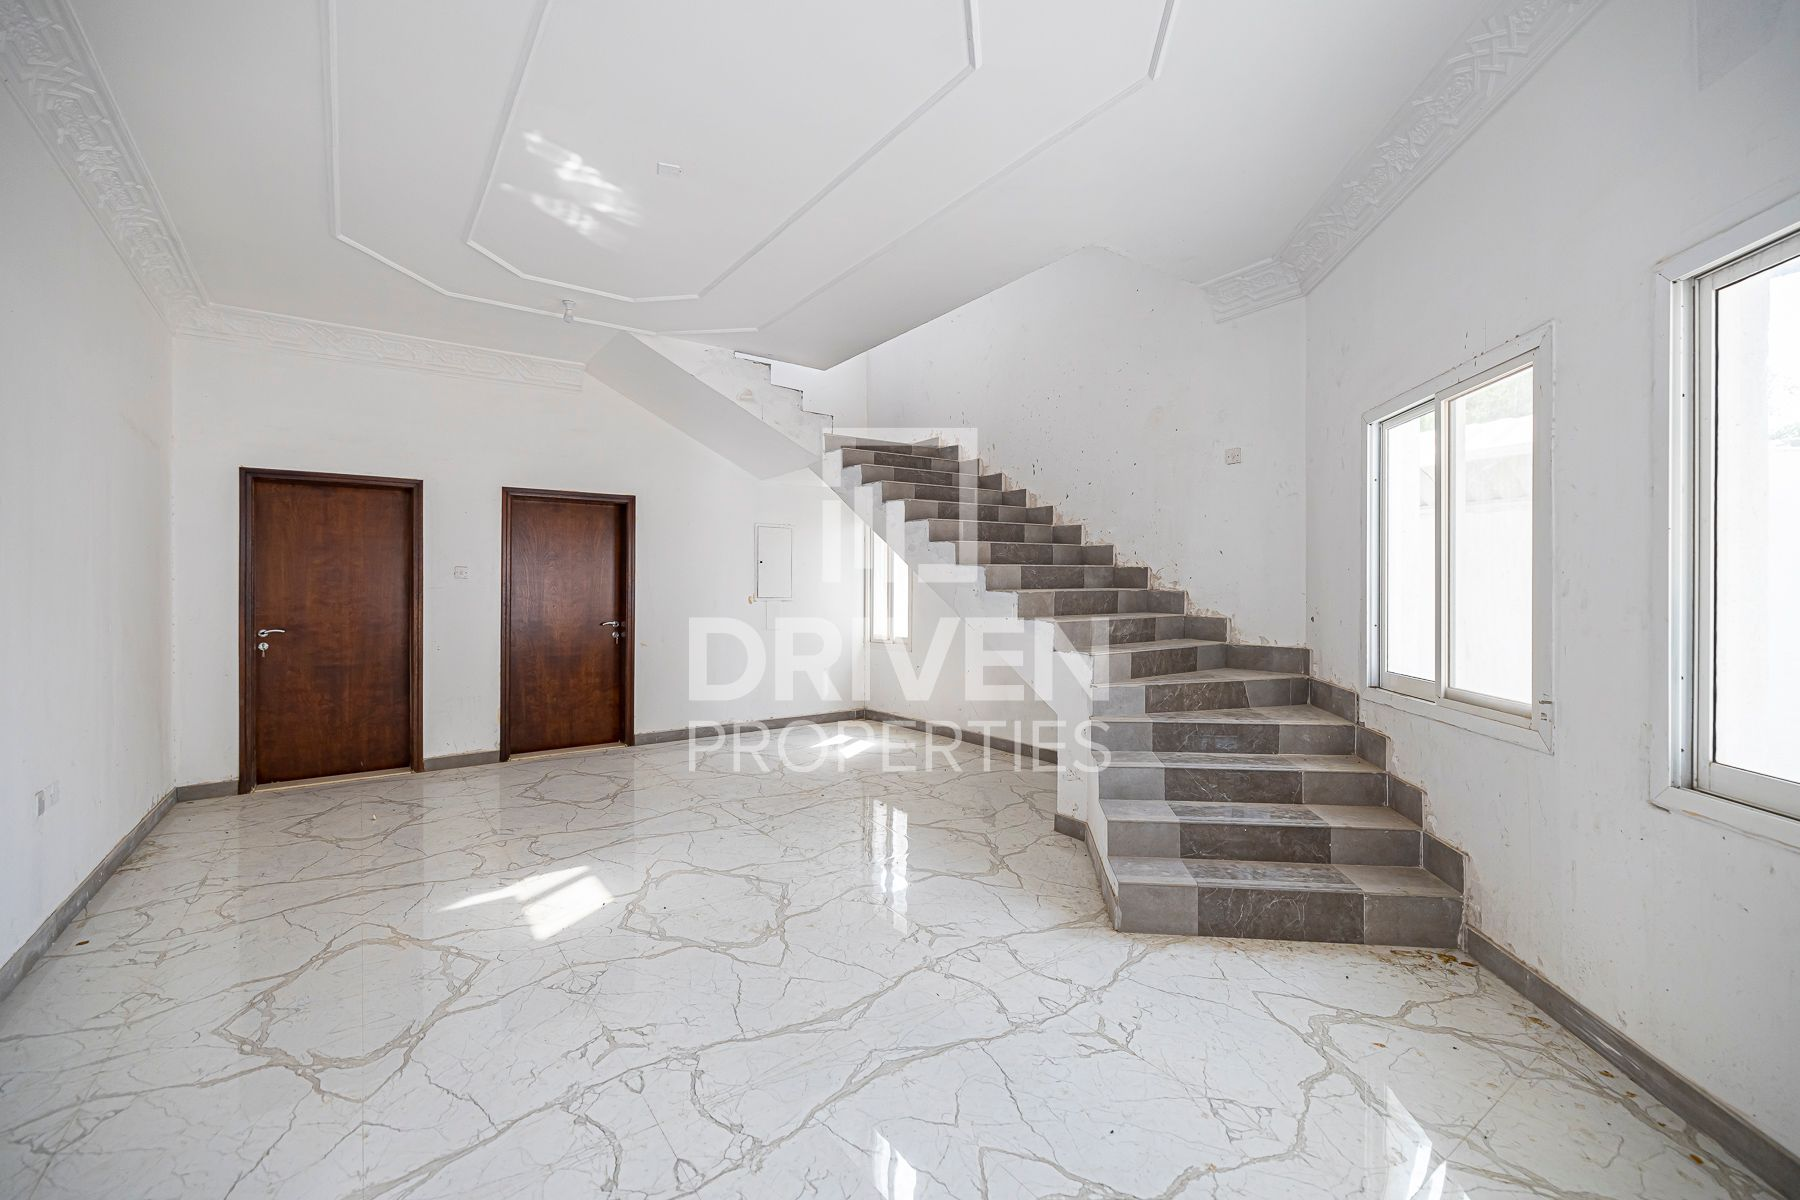 Unique Offer and Great Location in Deira